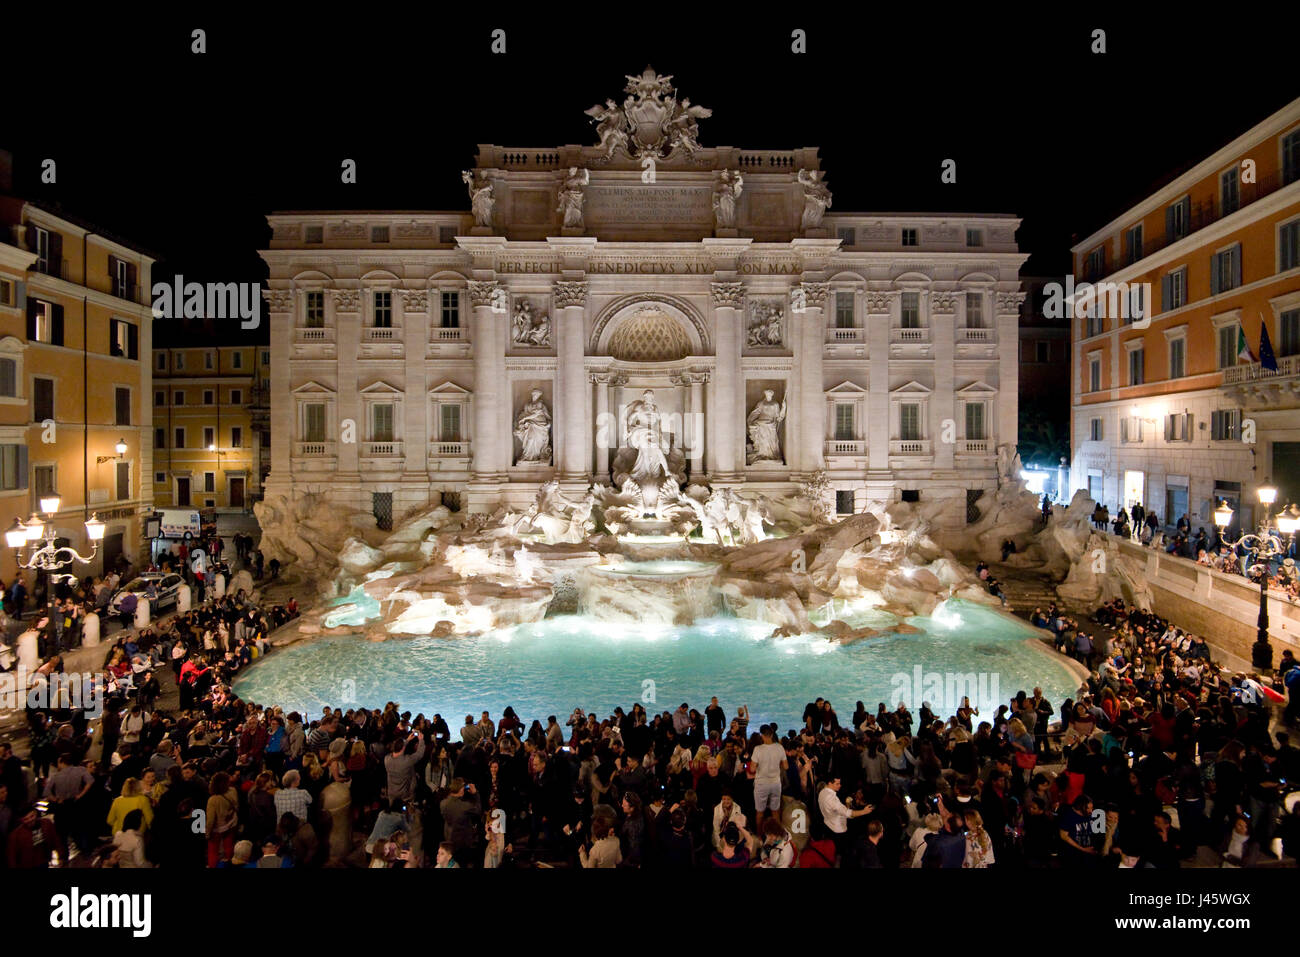 An aerial view of The Trevi Fountain 'Fontana di Trevi' in Rome with crowds of tourists and visitors at - Stock Image